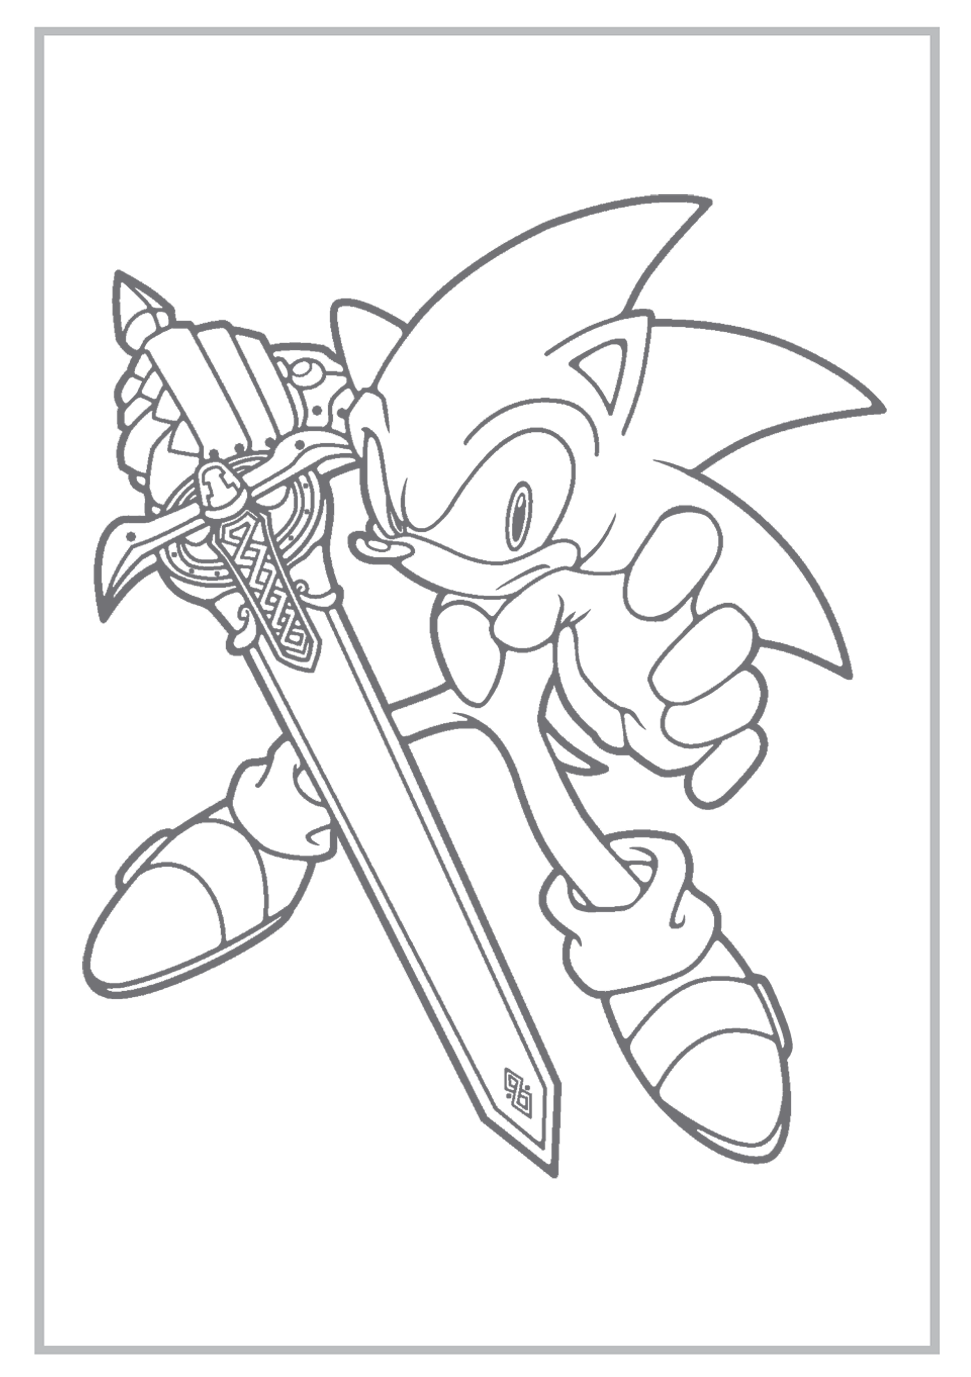 sonic coloring pages sonic the hedgehog coloring pages free printable download coloring - Sonic The Hedgehog Coloring Pages